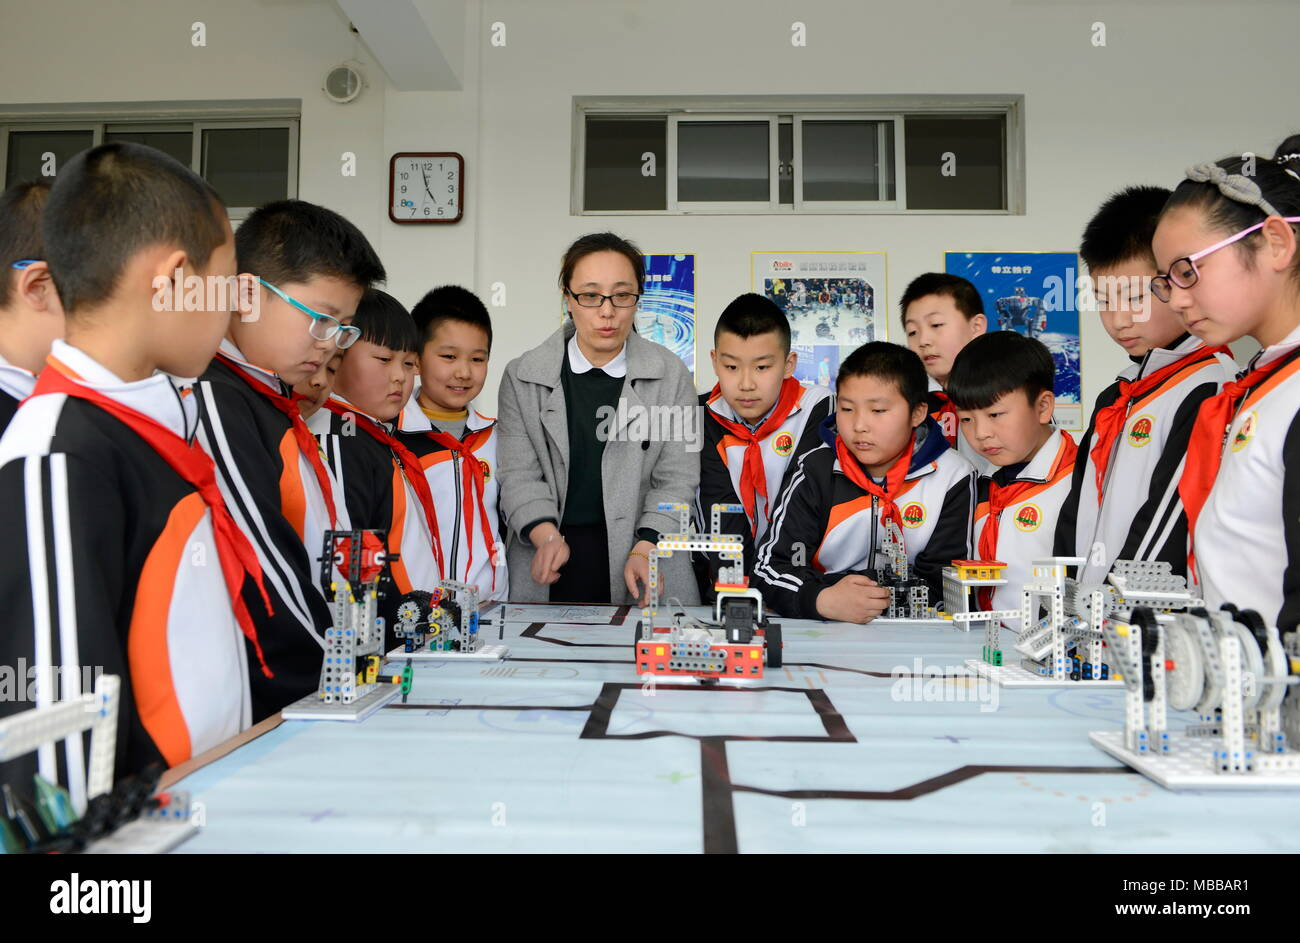 Tangshan, China's Hebei Province. 10th Apr, 2018. Students practise robots compitition during a class at a primary school in Laoting County, north China's Hebei Province, April 10, 2018. Robots are introduced into the extracurricular educational programs in the school. Credit: Mu Yu/Xinhua/Alamy Live News - Stock Image